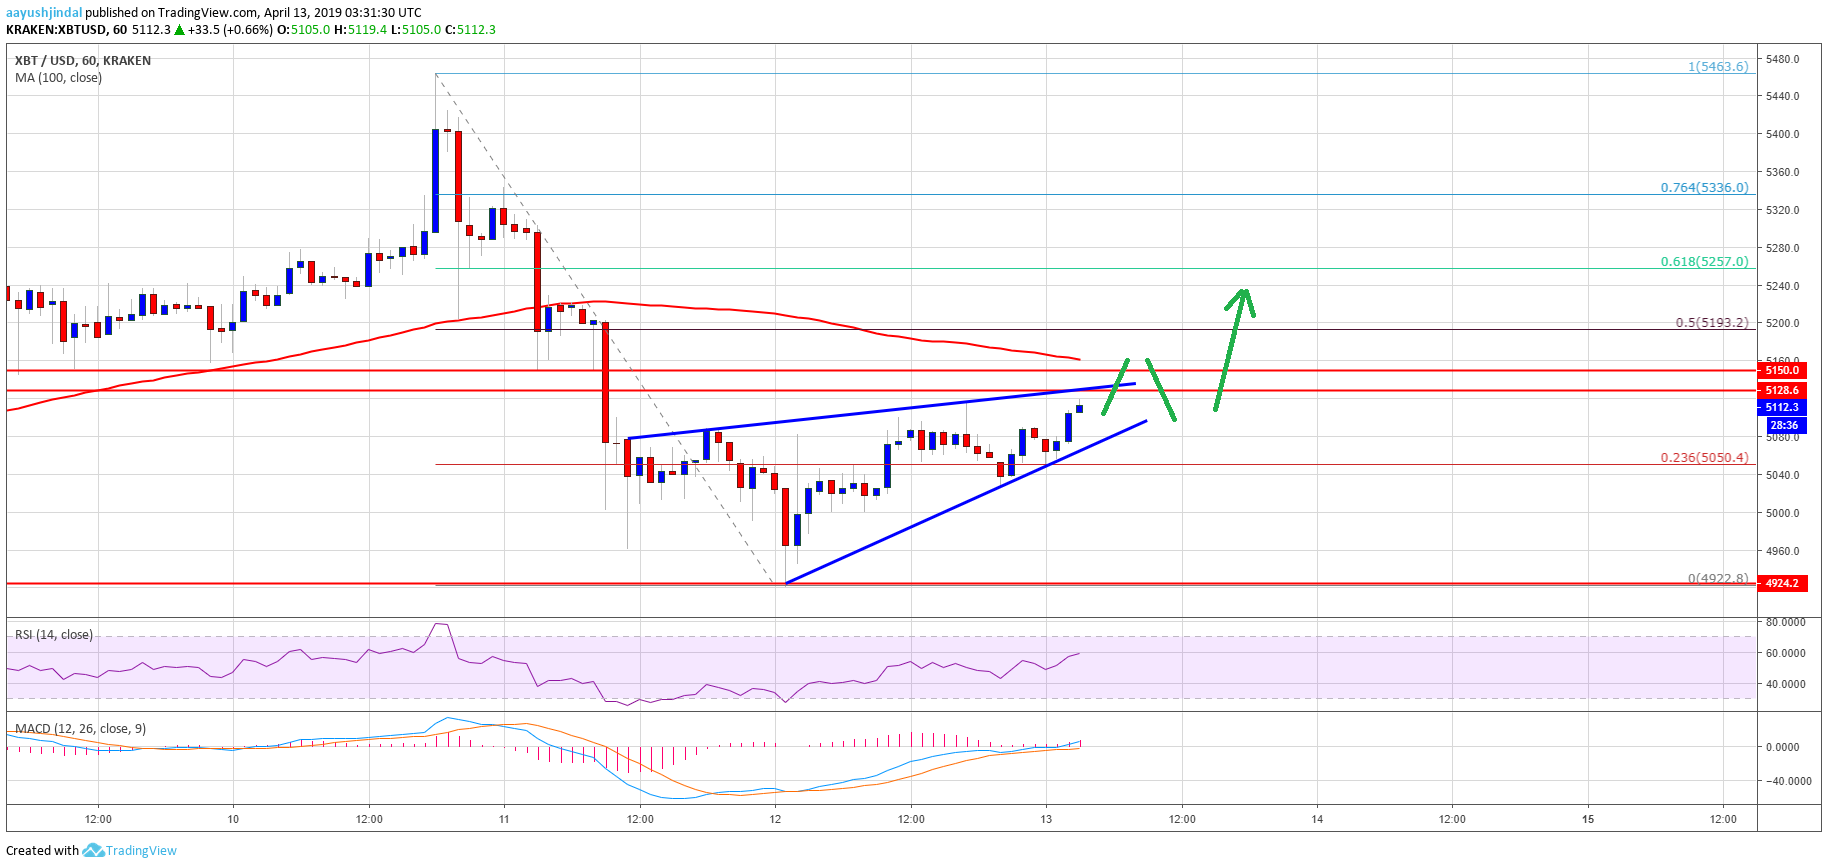 Bitcoin (BTC) Price Signaling Bullish Continuation With Bulls In Control